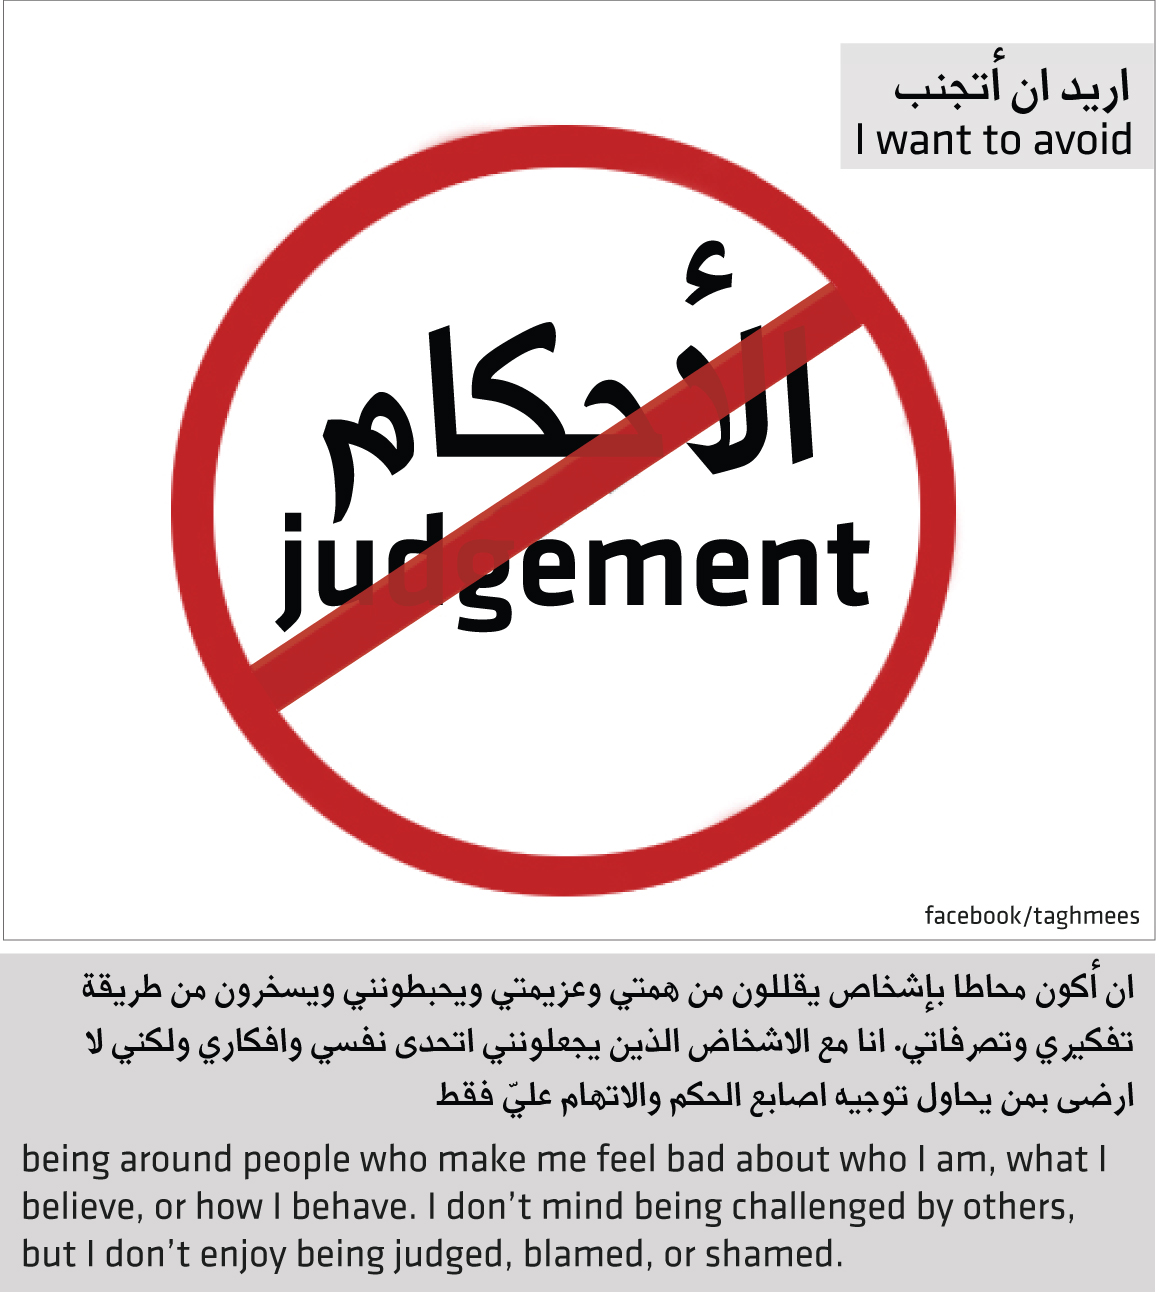 I want to avoid Judgement 2.